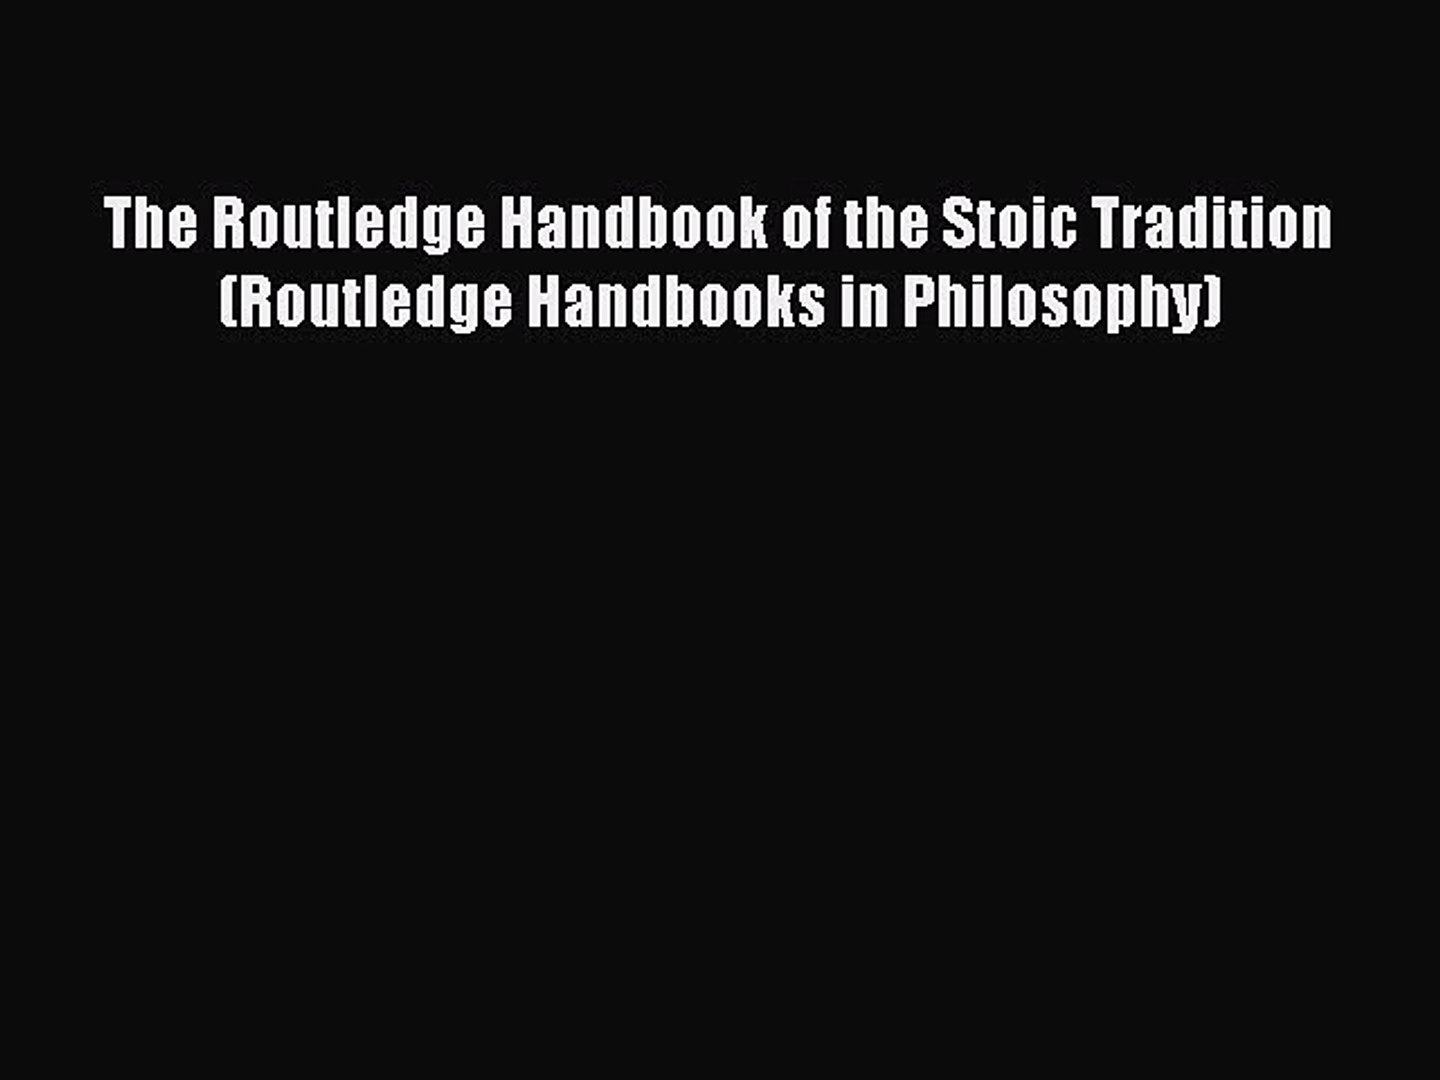 The Routledge Handbook of the Stoic Tradition (Routledge Handbooks in Philosophy)